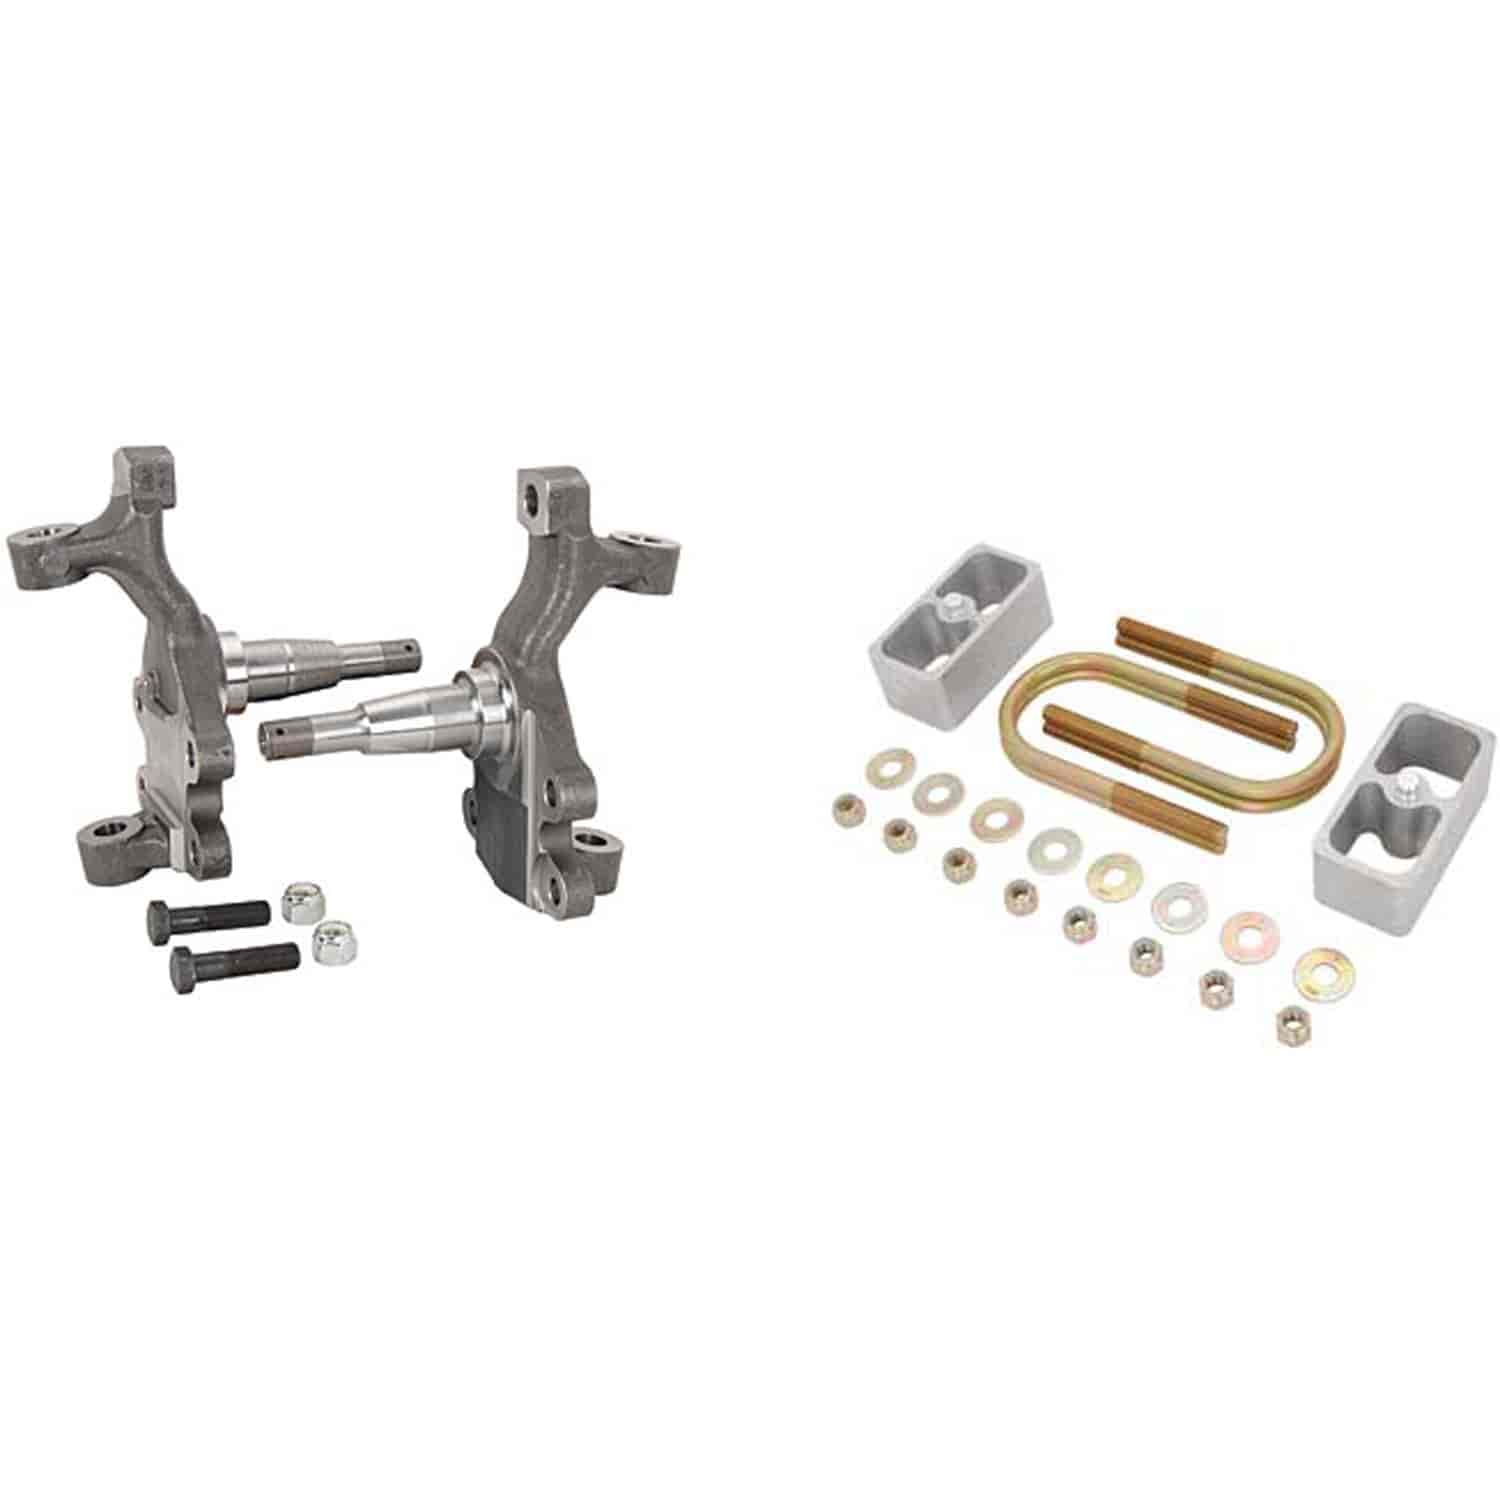 Ssbc A Dsk Gm Muscle Lowering Kit